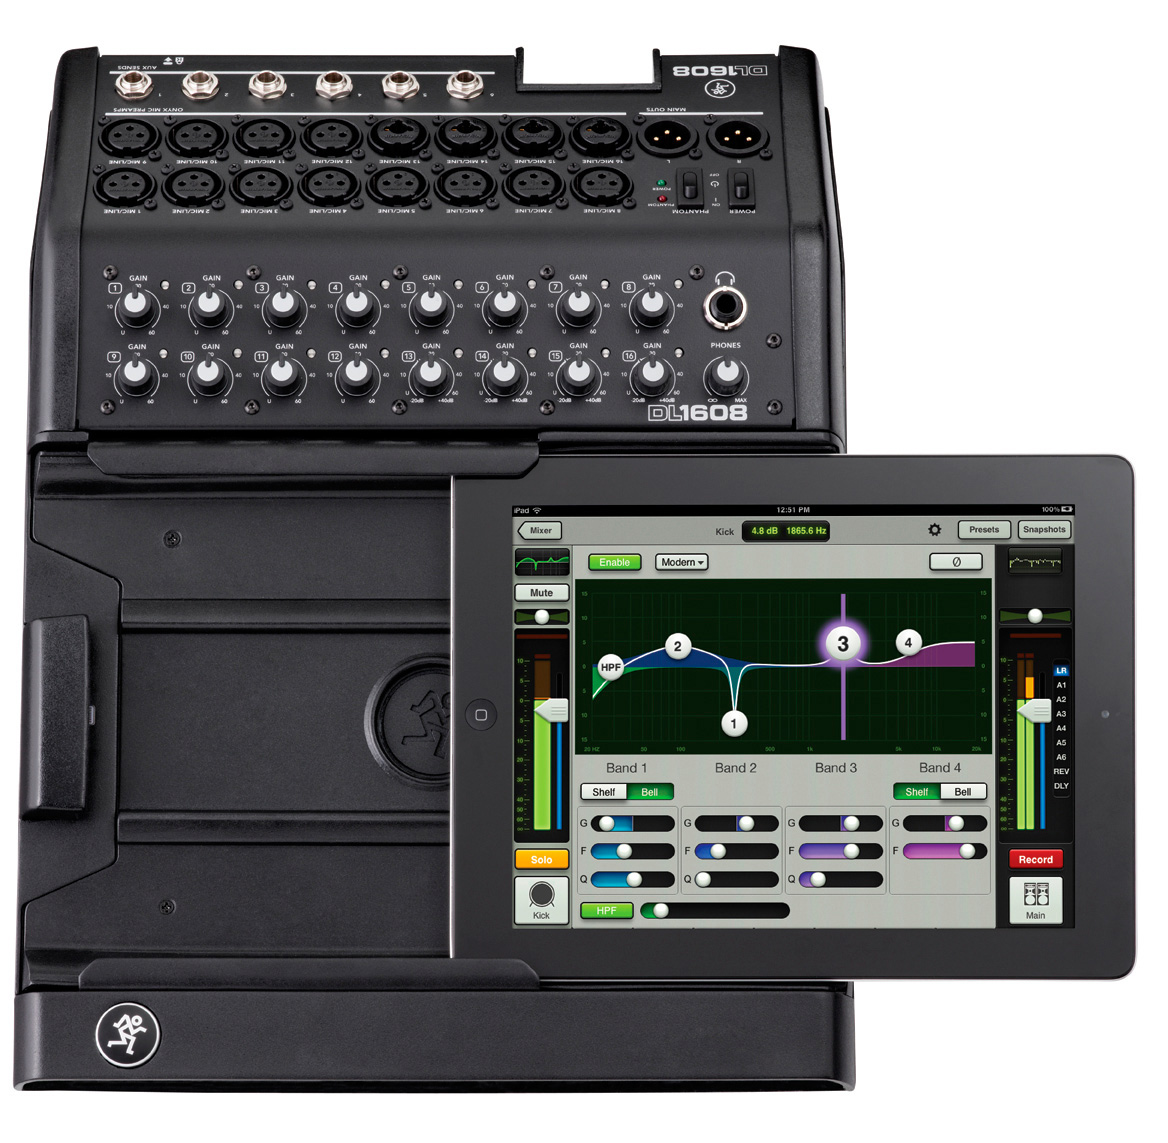 mackie dl1608l 16 channel digital live sound mixer with ipad control via lightning connector. Black Bedroom Furniture Sets. Home Design Ideas